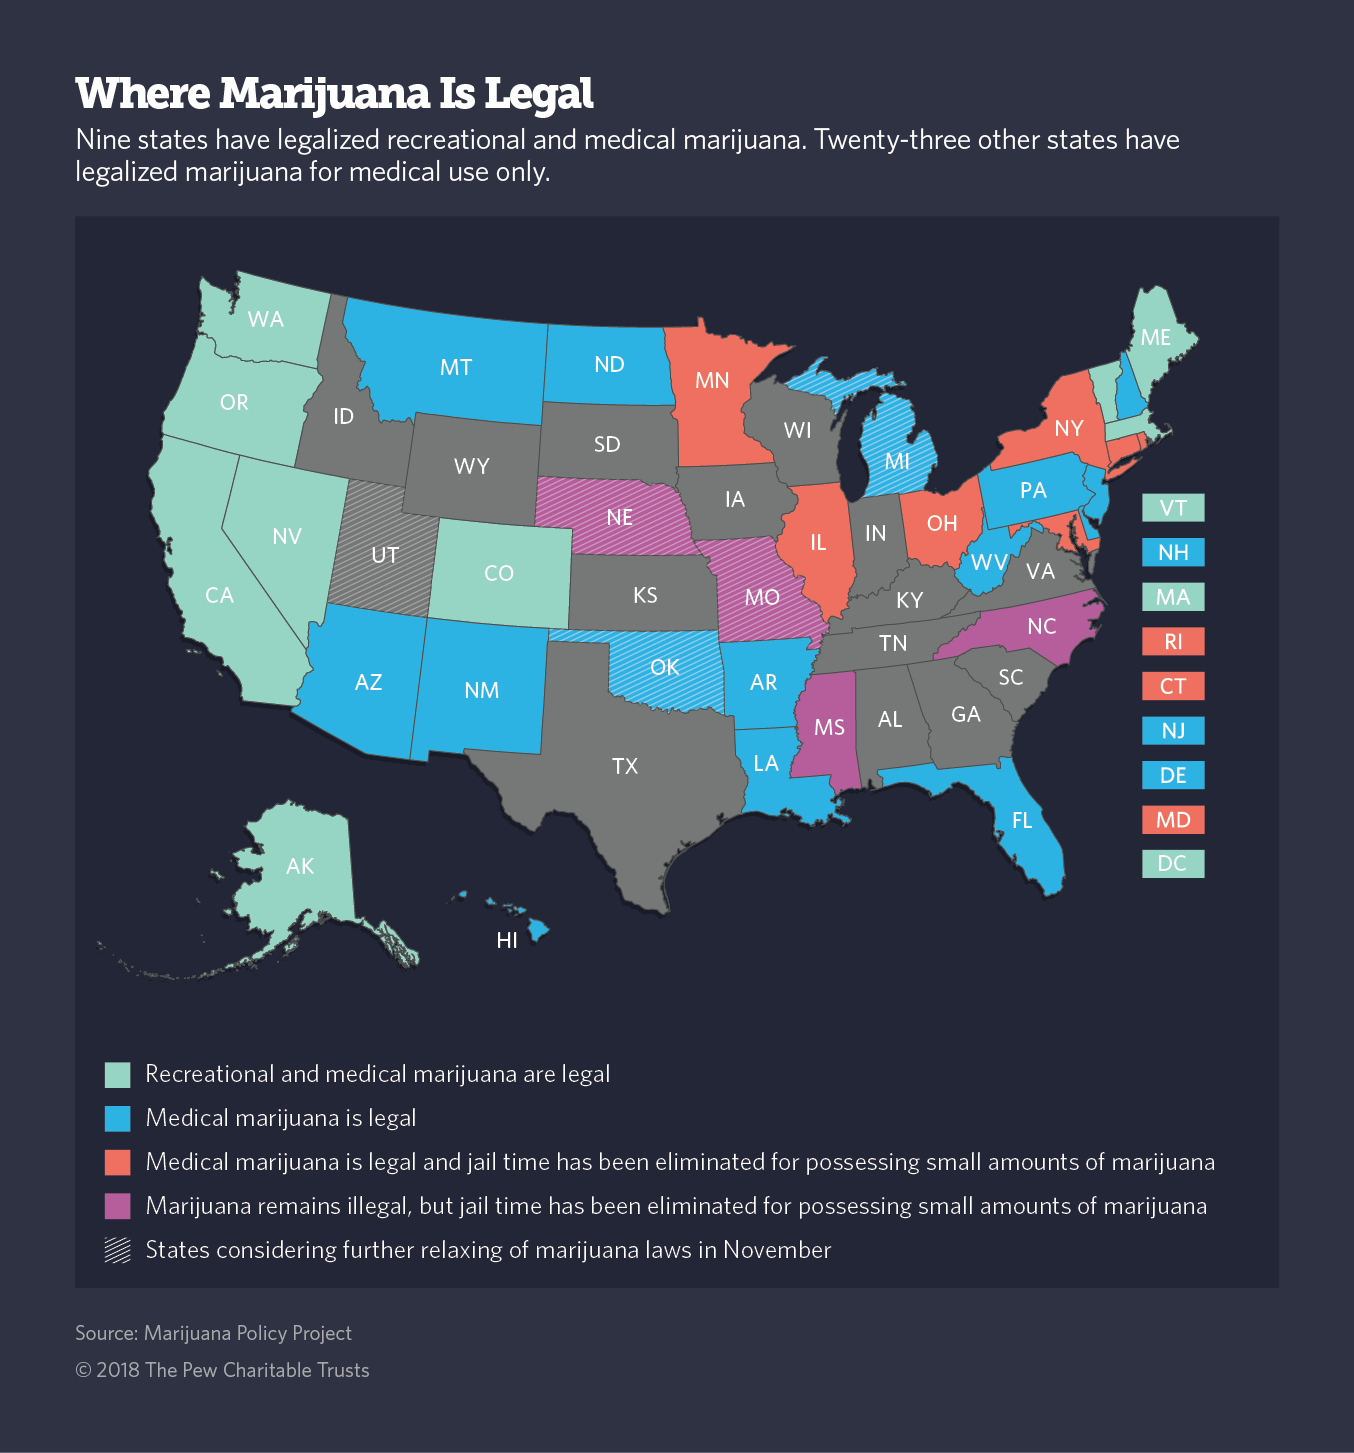 an analysis of 25 states and washington dc in marijuana for treatment Find out the latest state legislative activity in regards to medical marijuana  in  addition, psychological effects can complicate the interpretation of other aspects  of the  the usdoj expects states like colorado and washington to create  strong,  the dc council then put initiative 59 on hold temporarily and  unanimously.